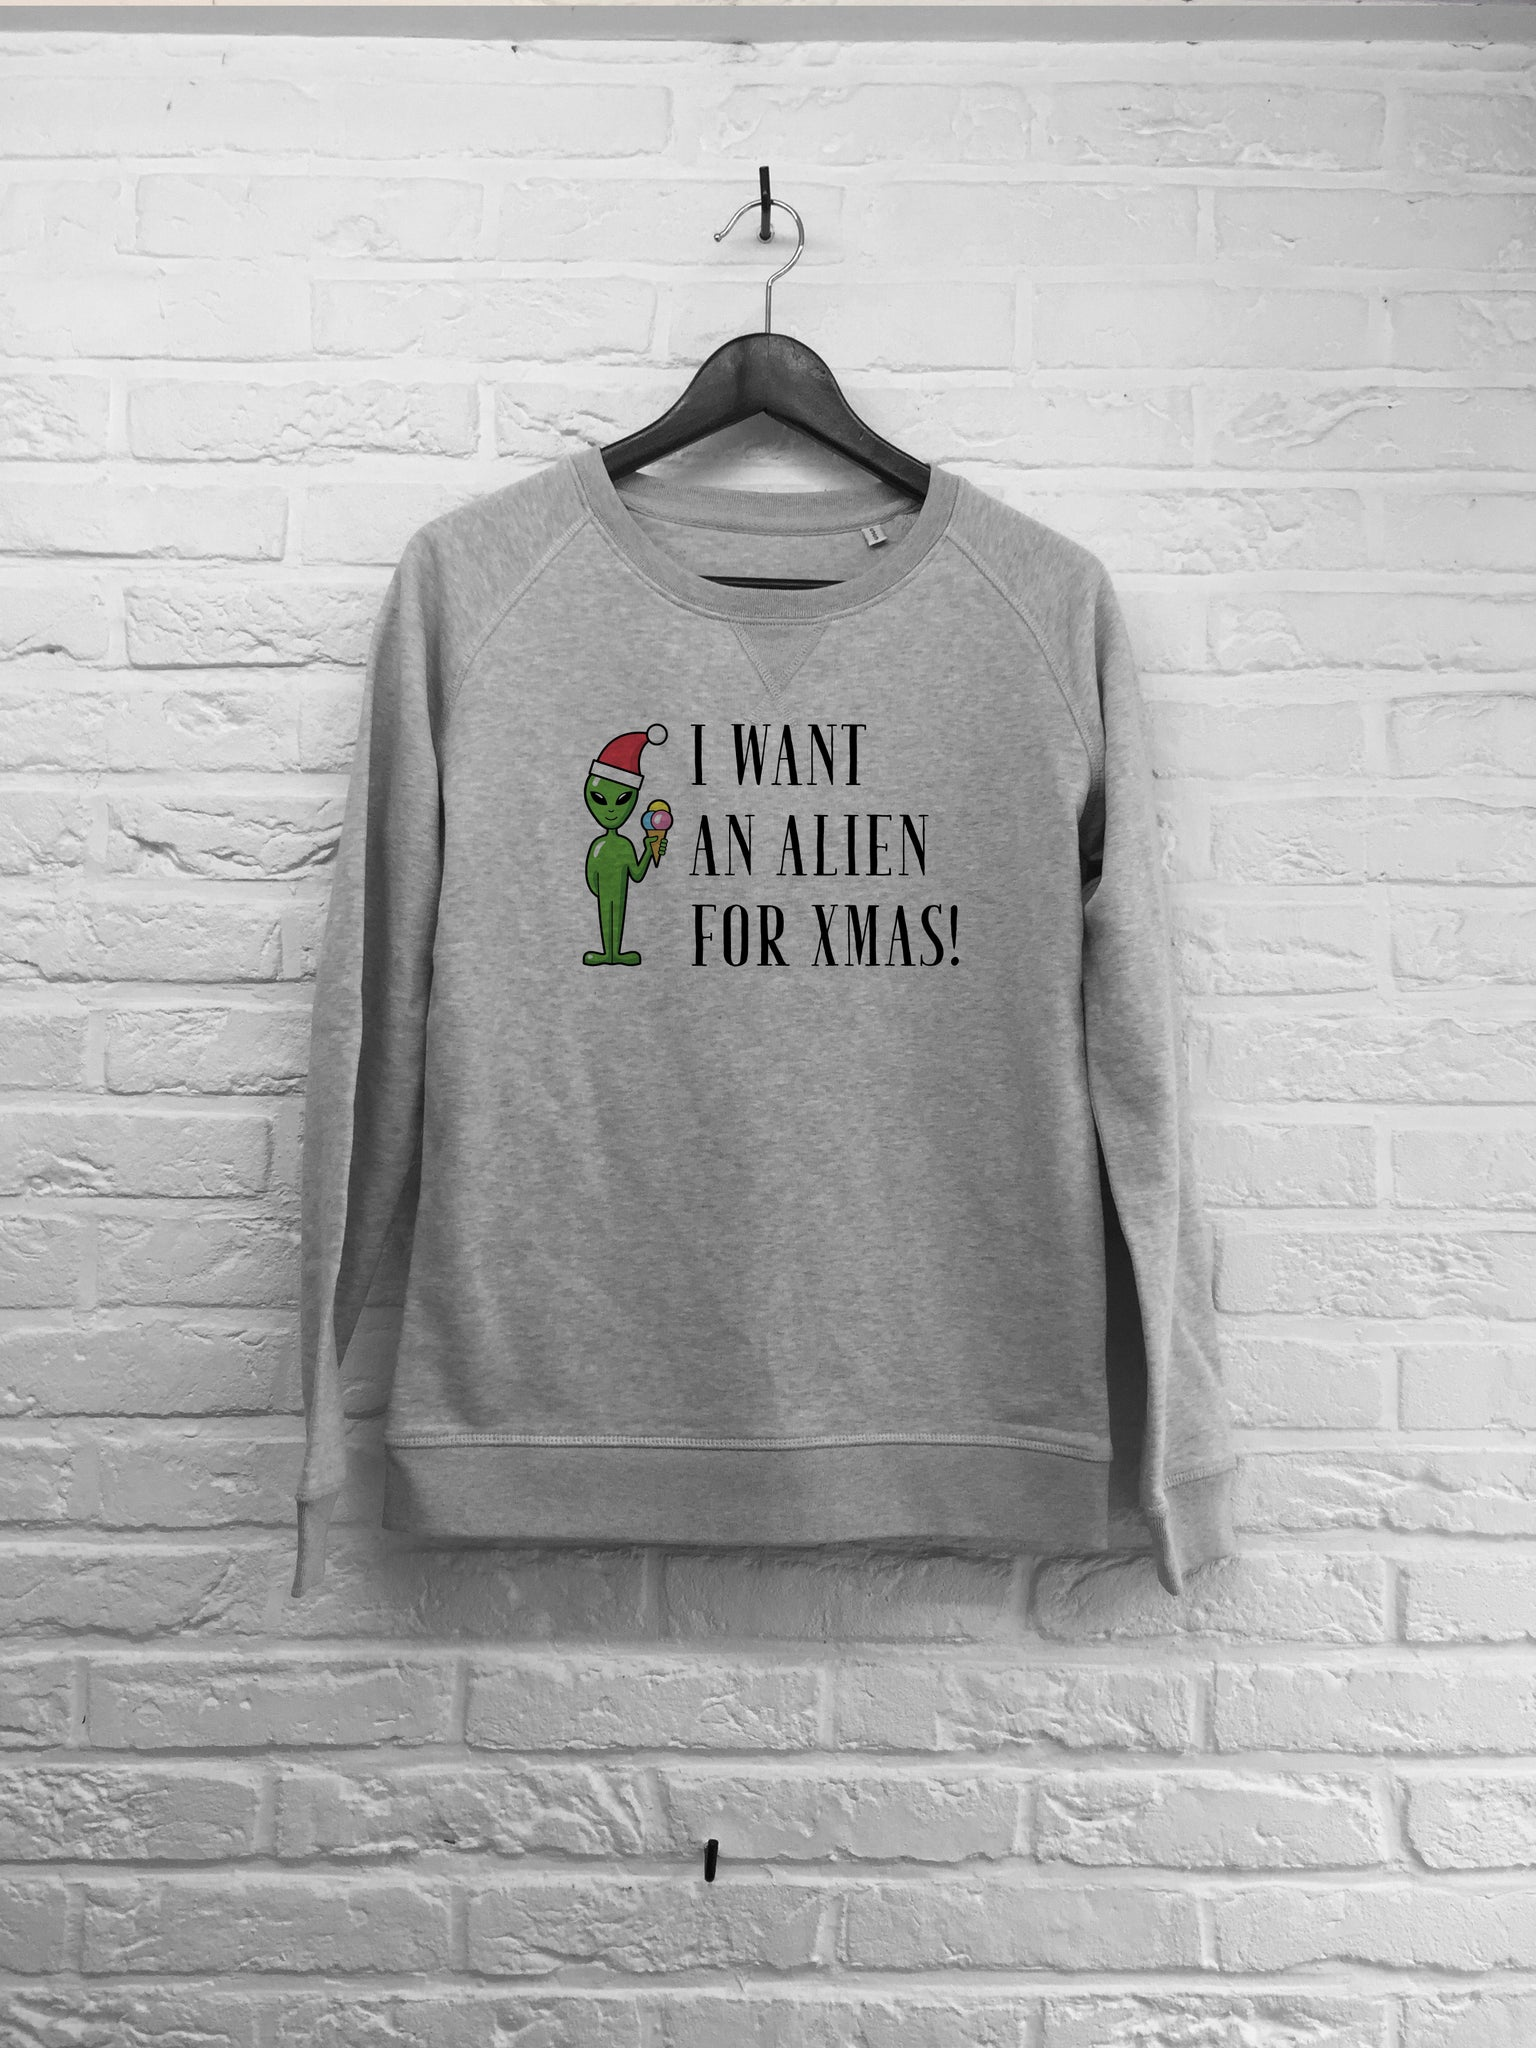 I want an alien for xmas - Sweat - Femme-Sweat shirts-Atelier Amelot